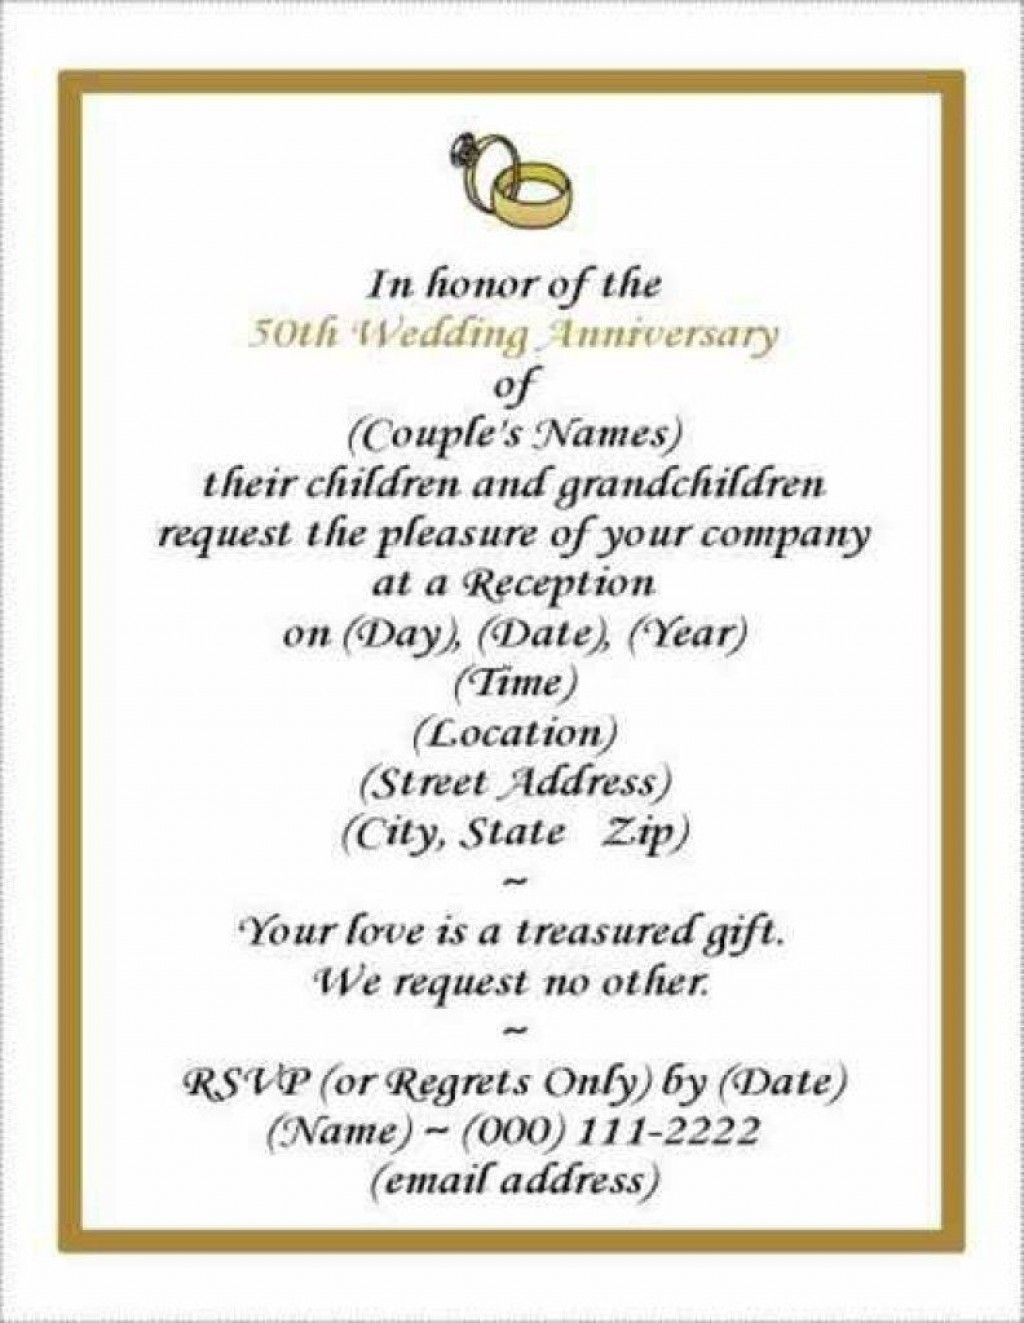 002 Remarkable 50th Wedding Anniversary Invitation Card Template Picture  Templates SampleLarge